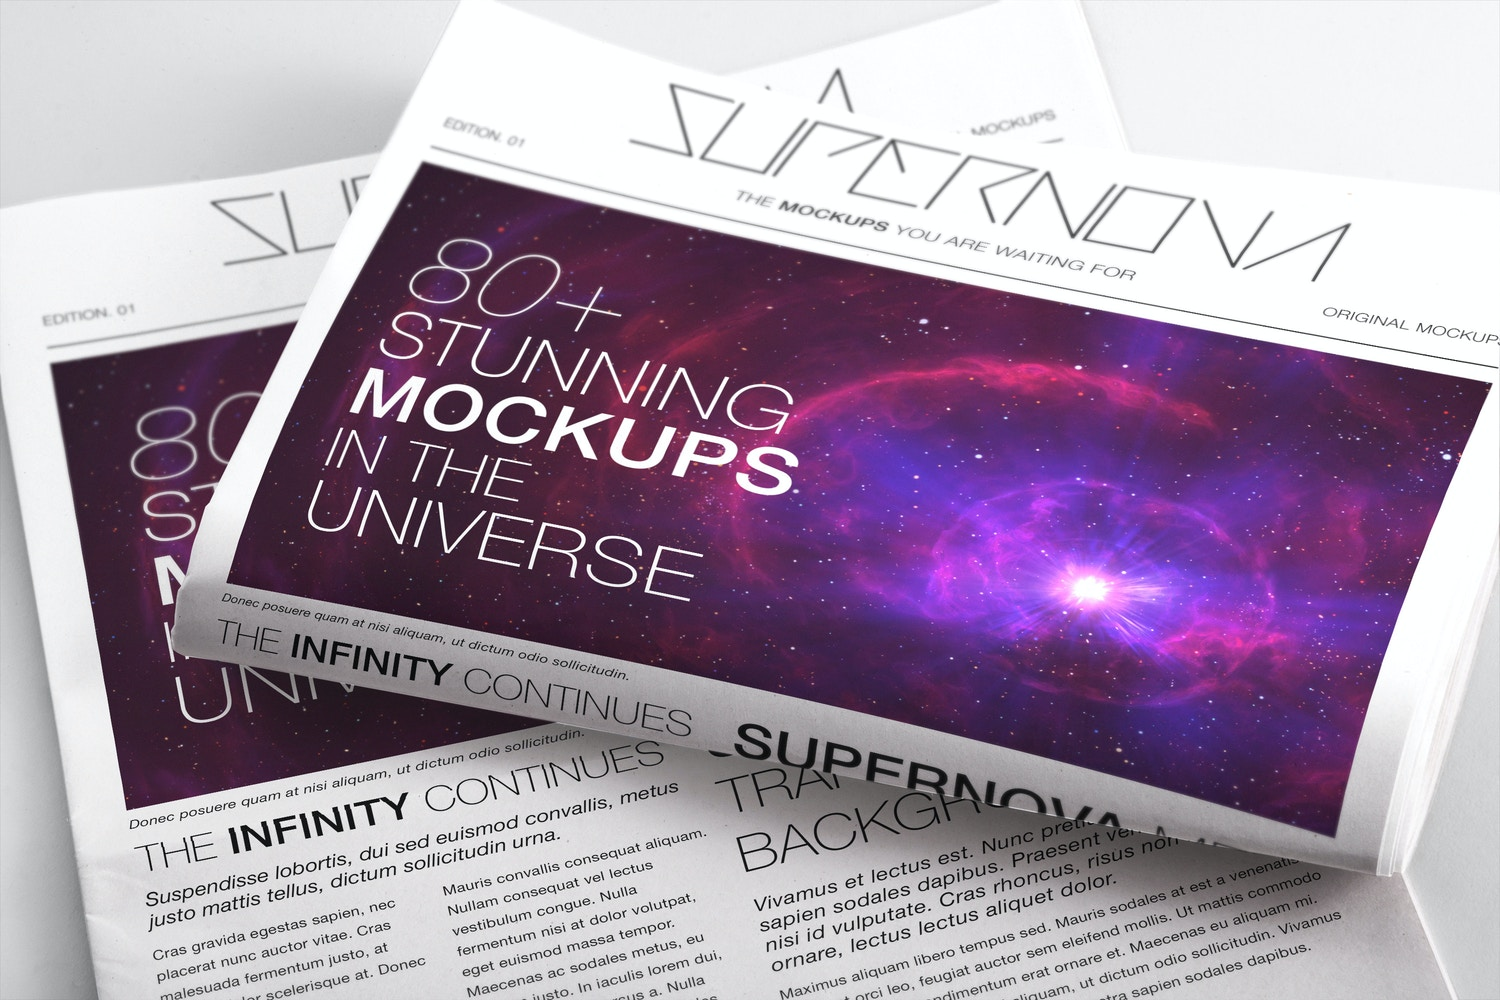 Newspaper PSD Mockup 05 by Original Mockups on Original Mockups